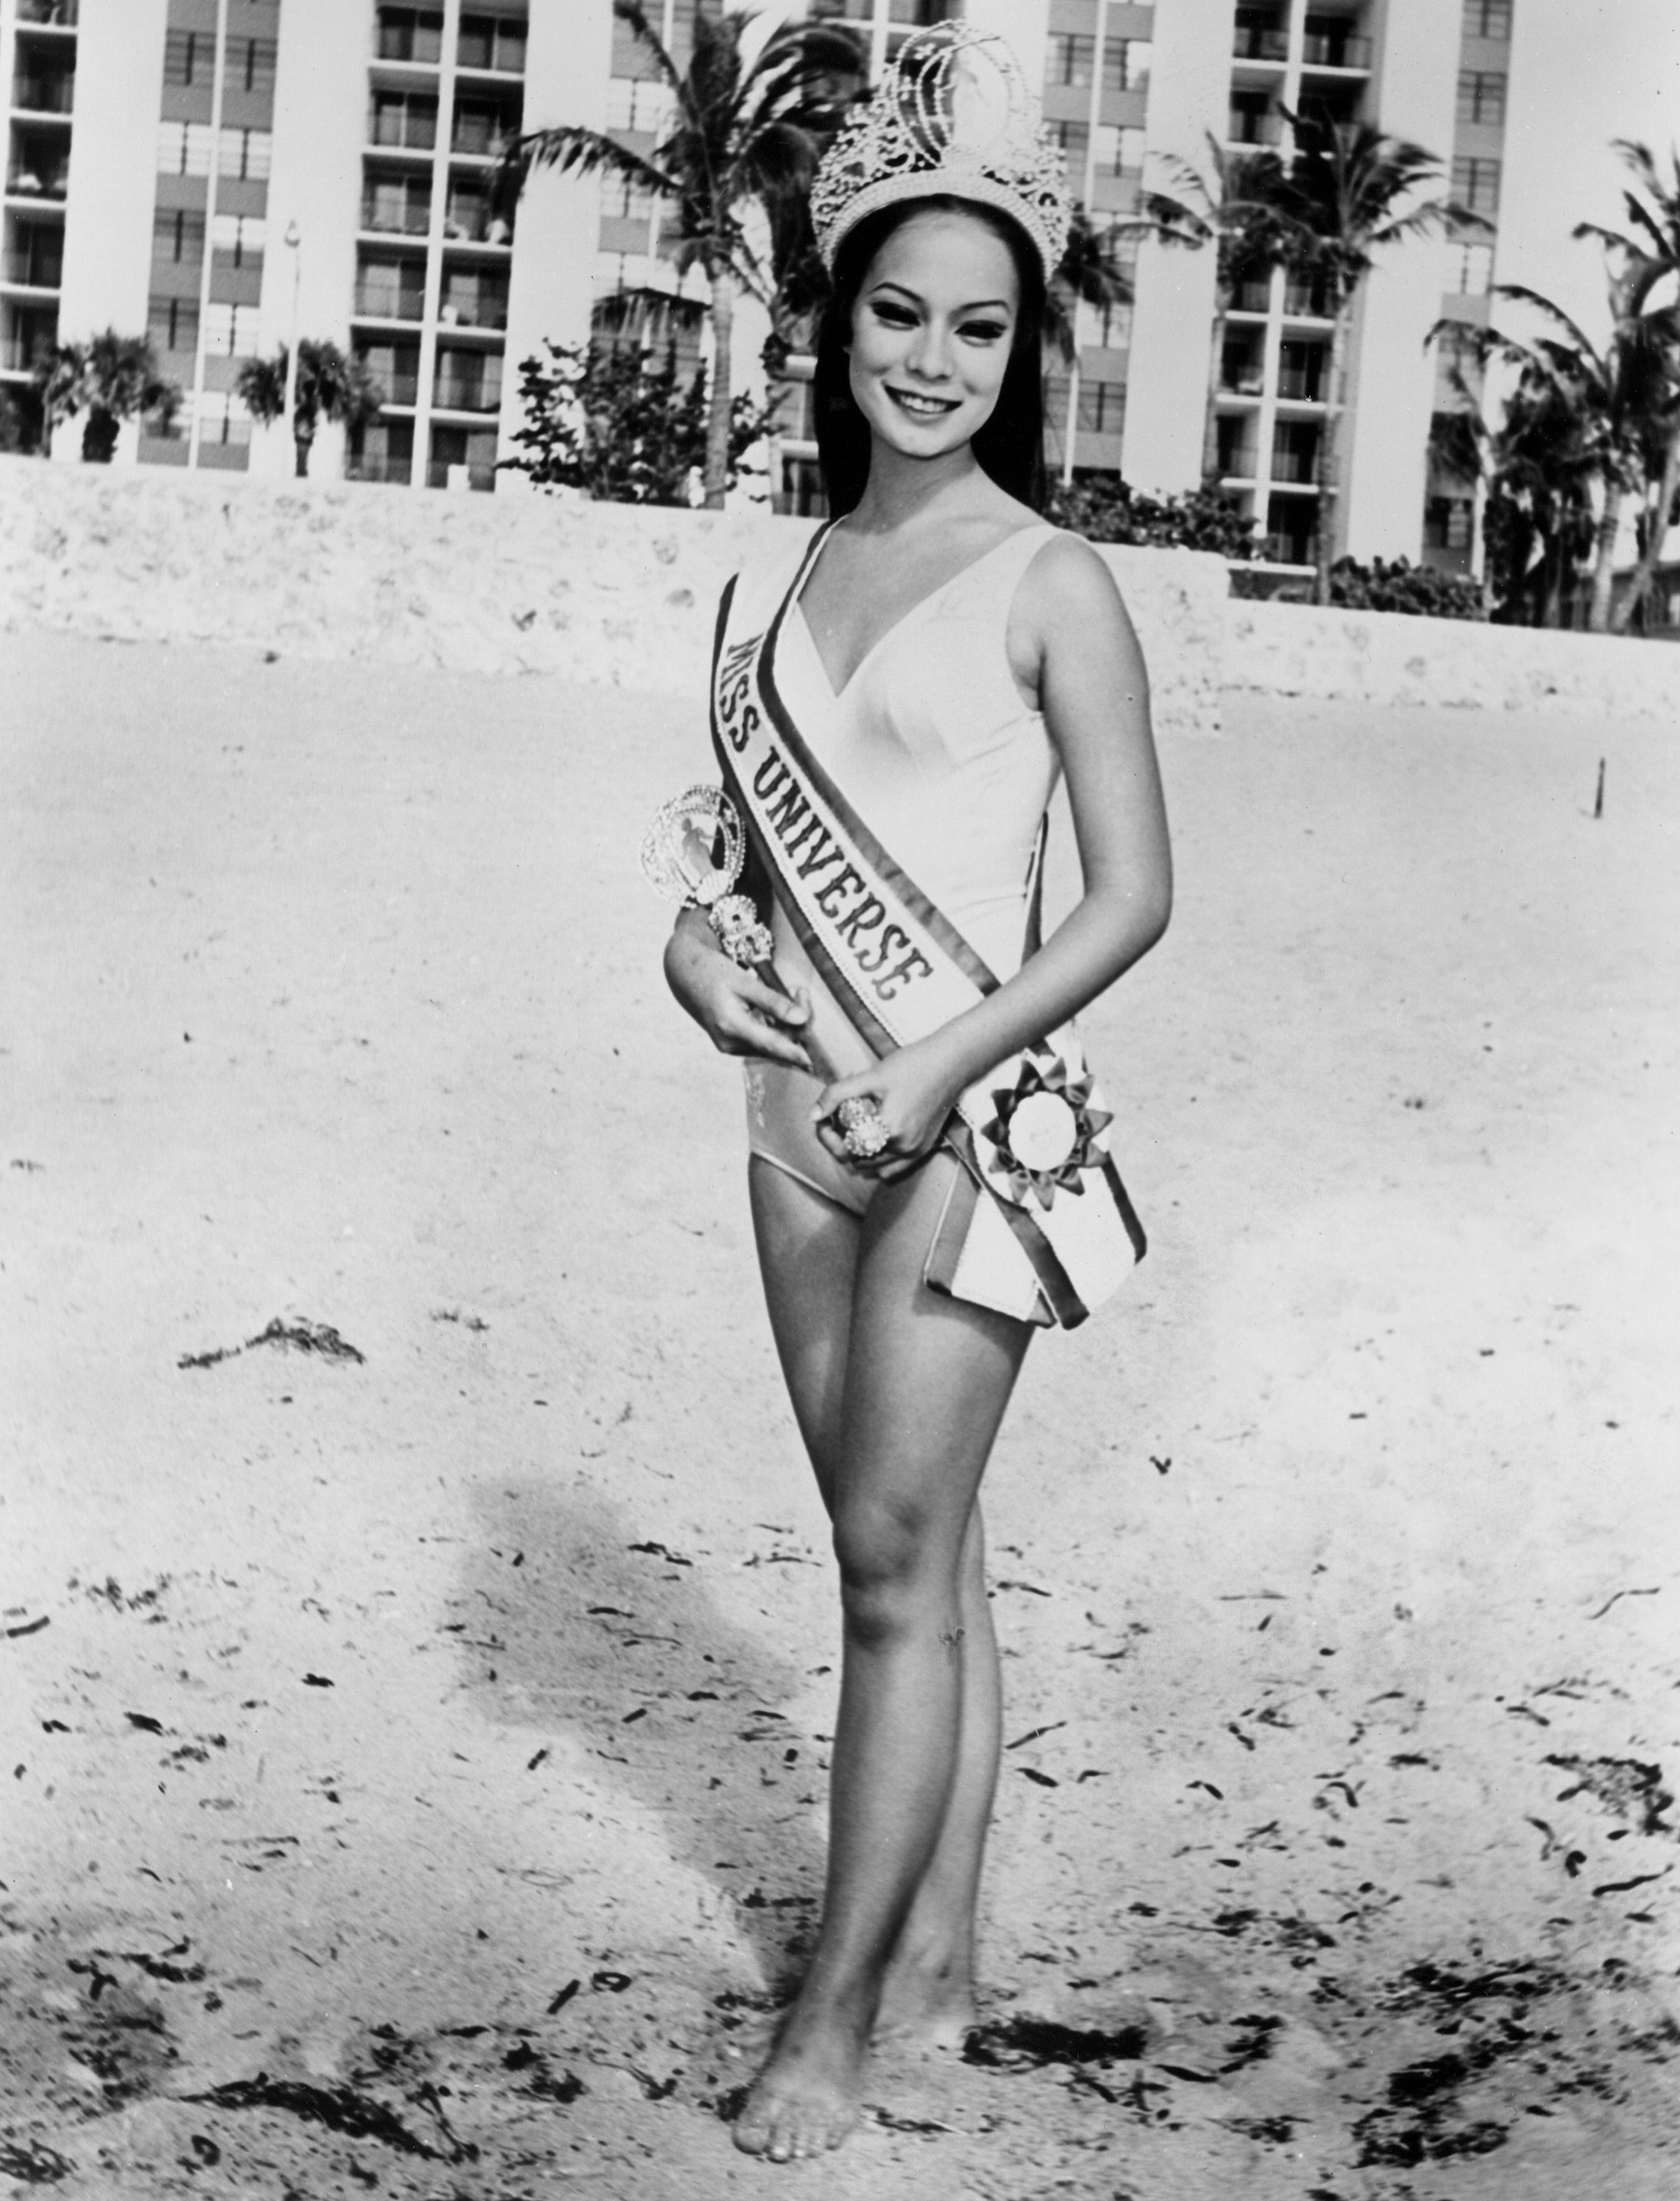 ICON. Gloria poses for photographers the day after she won her title in 1969. Photo from the Miss Universe Organization